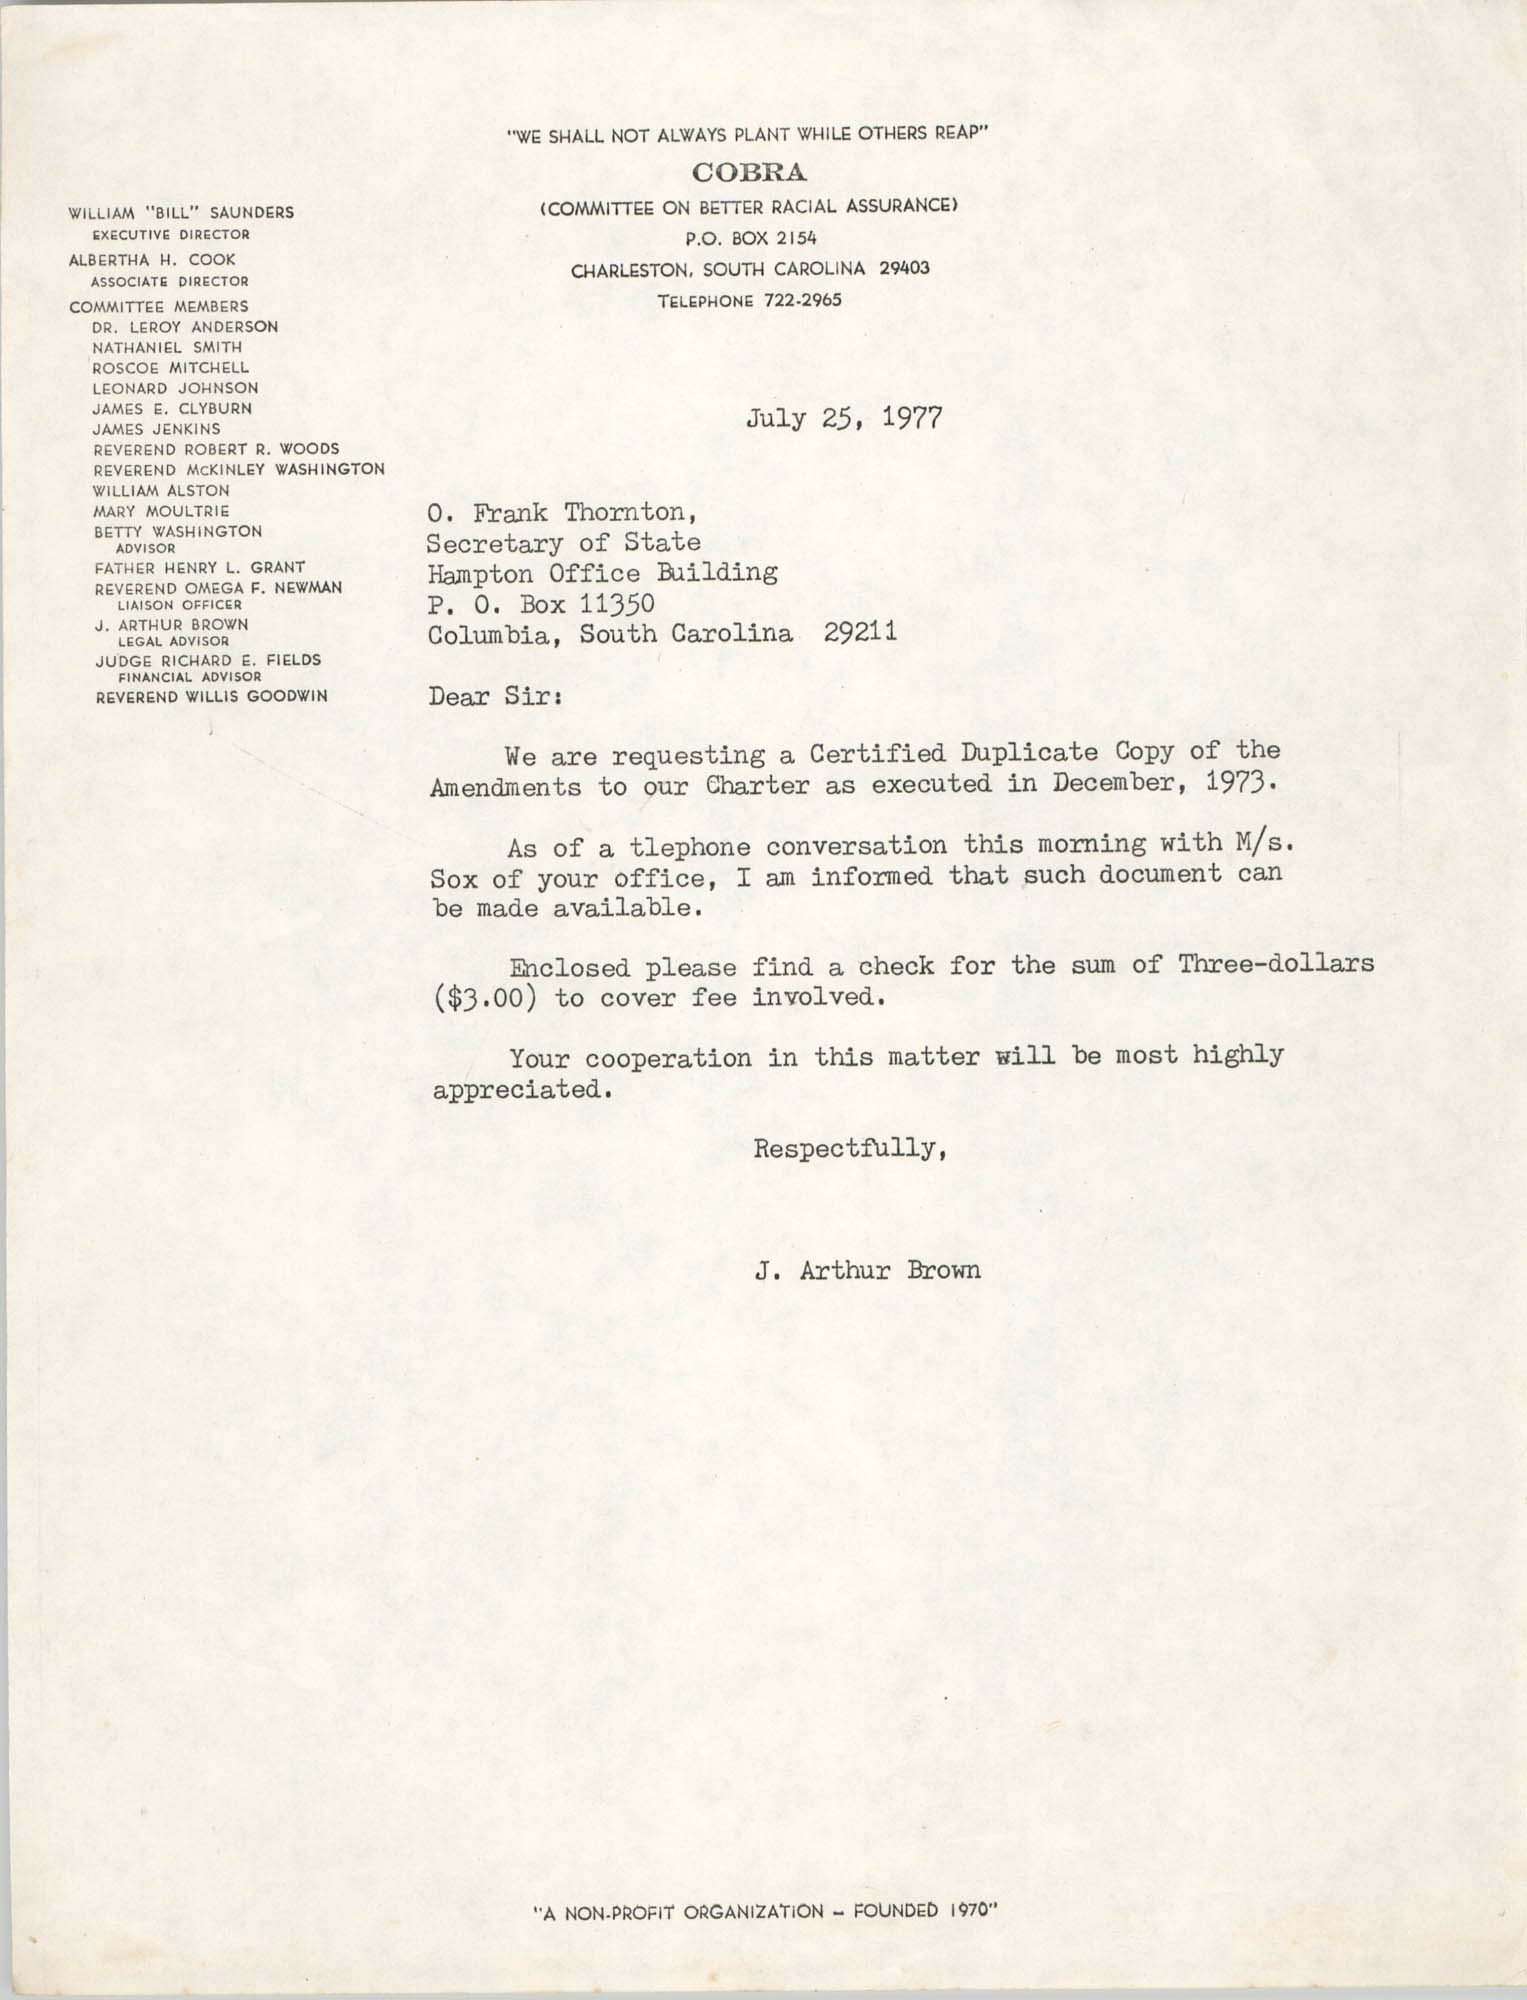 Letter from J. Arthur Brown to O.Frank Thornton, July 25, 1977